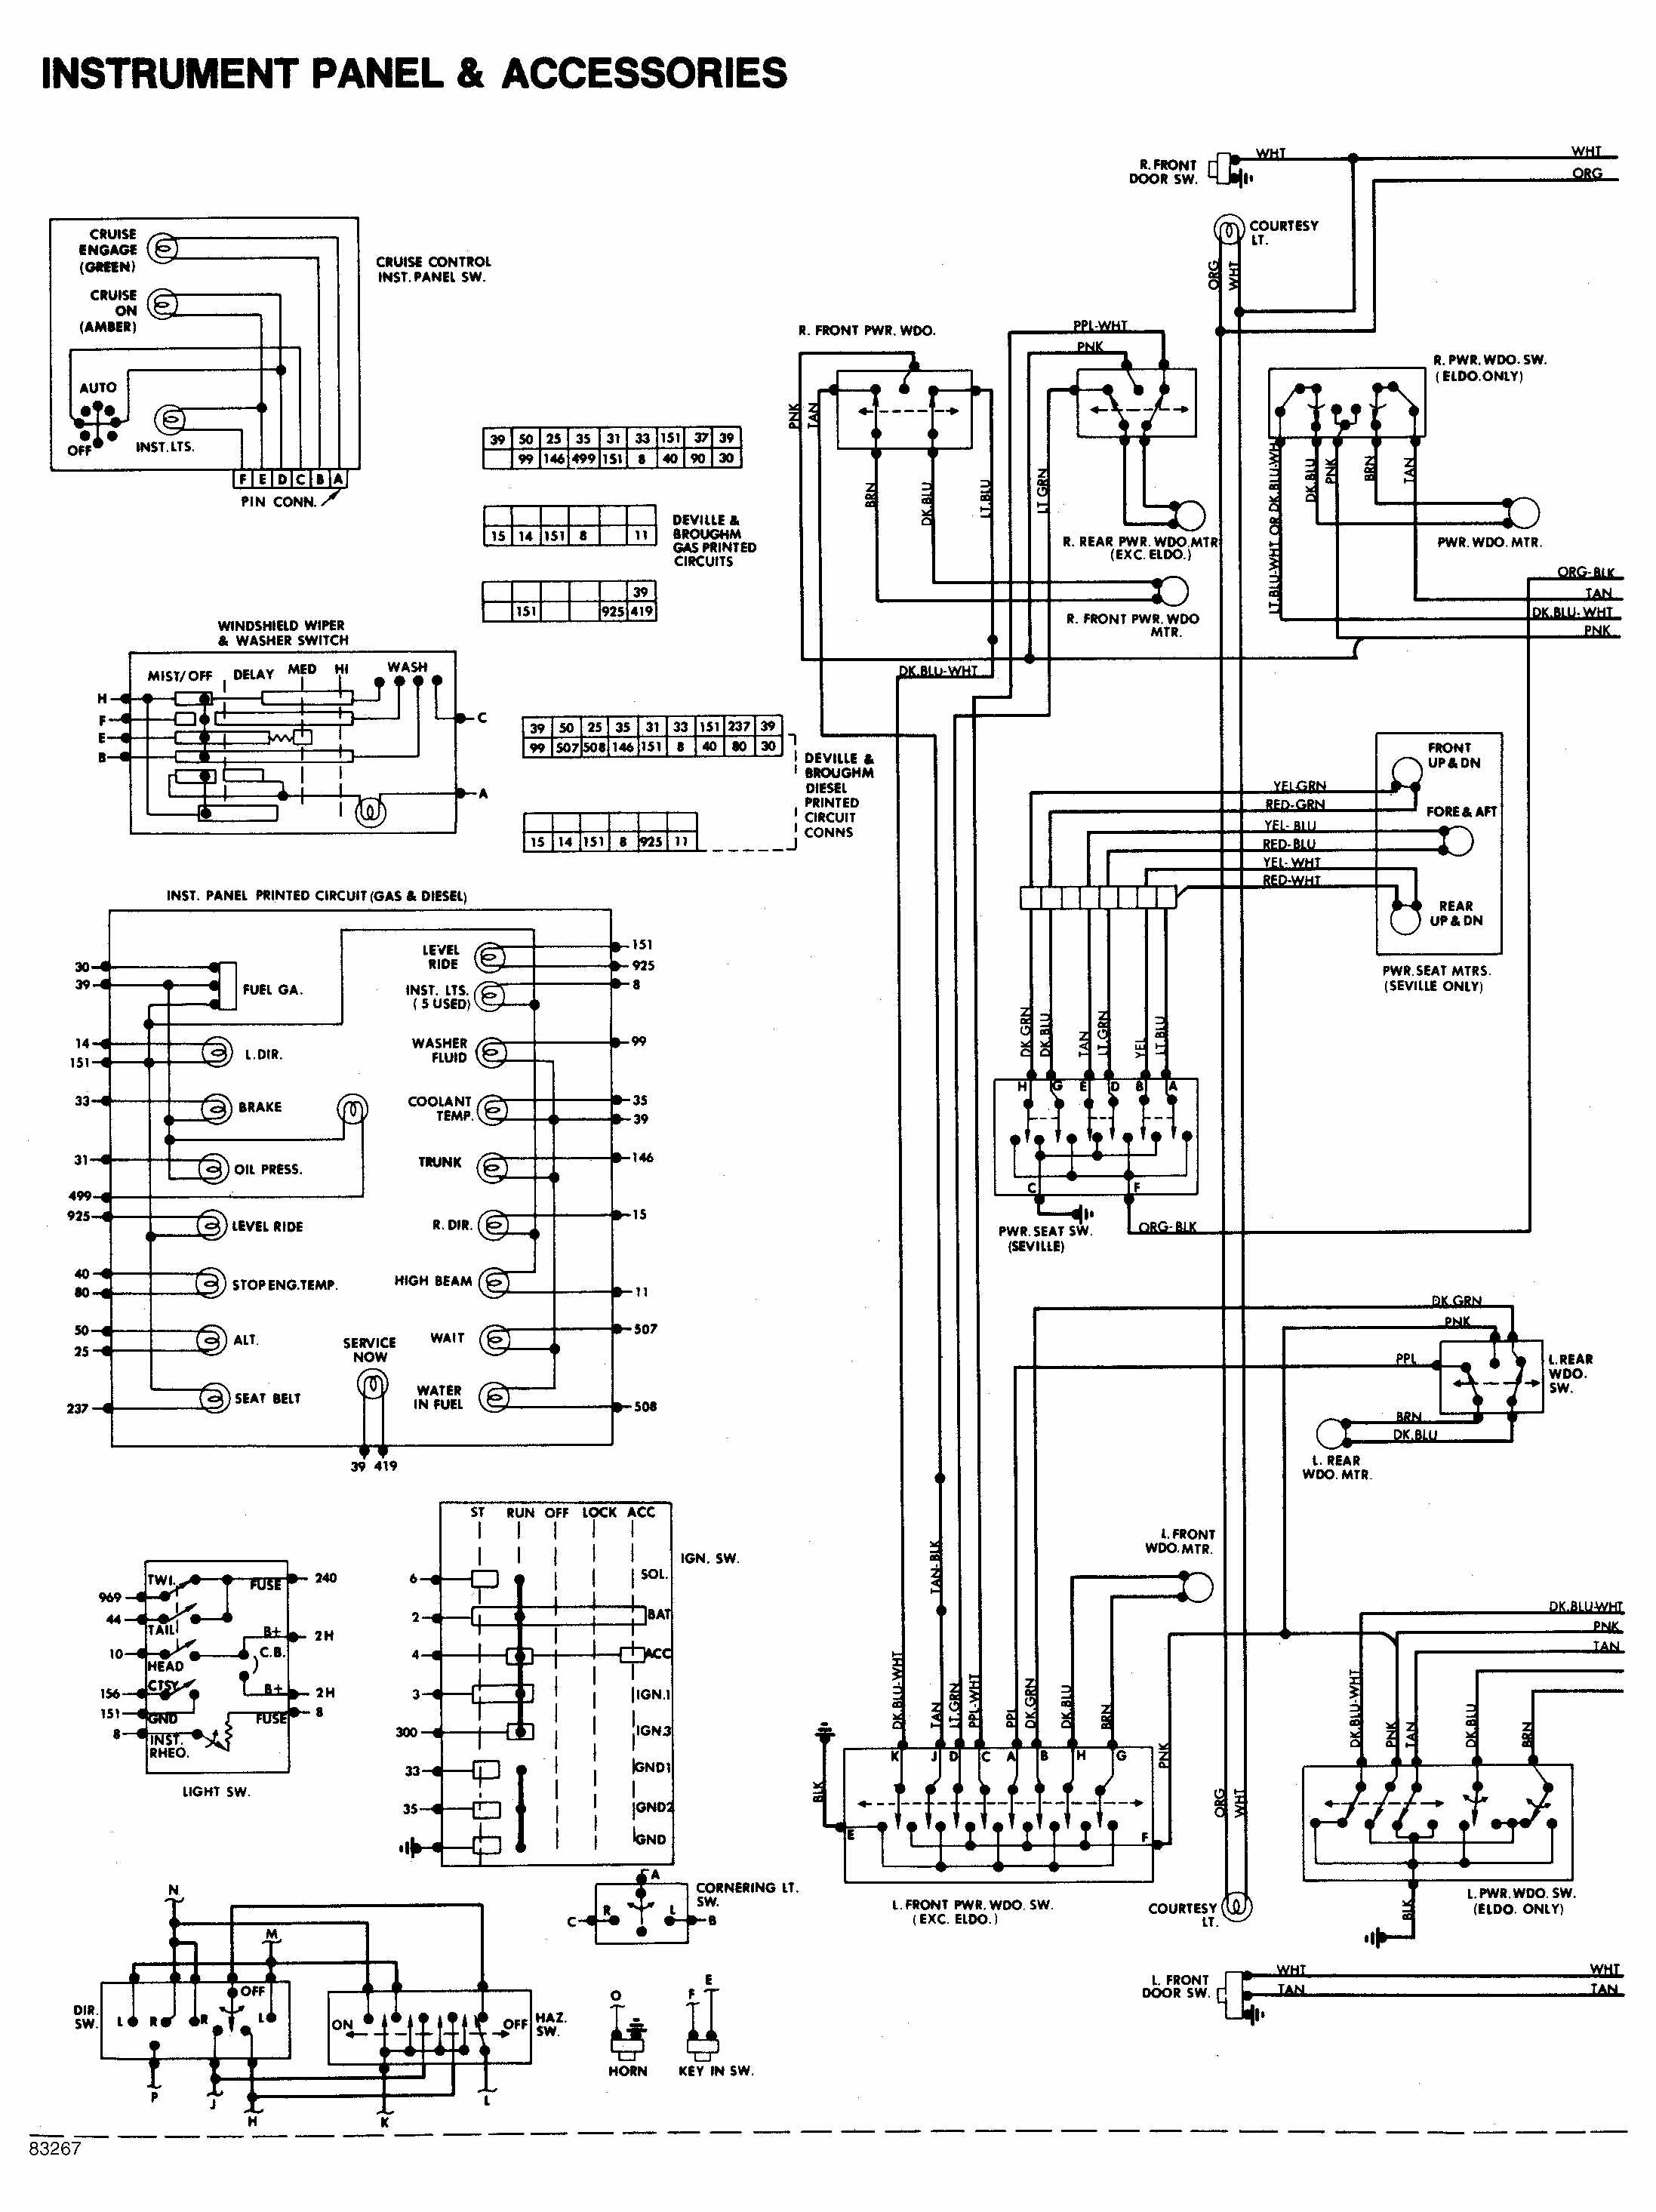 instrument panel and accessories wiring diagram of 1984 cadillac deville chevy diagrams 77 Corvette Wiring Diagram at bakdesigns.co